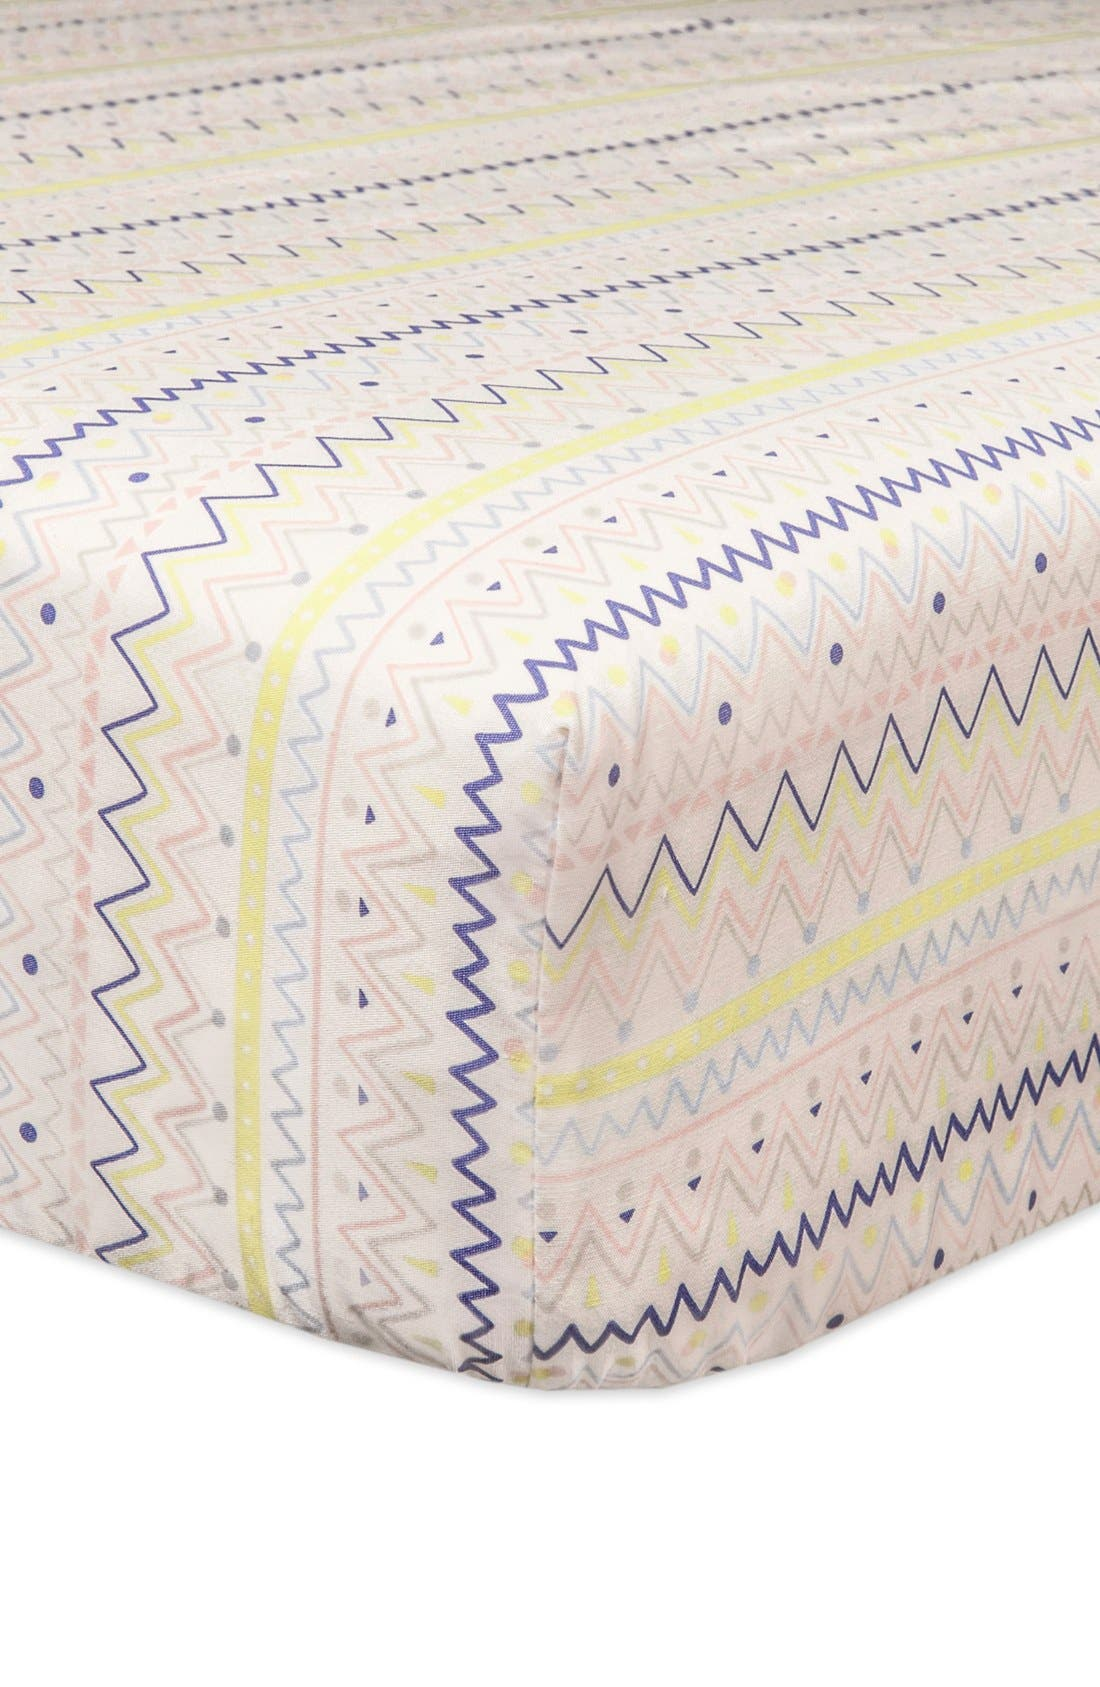 BABYLETTO, 'Desert' Crib Sheet, Crib Skirt, Changing Pad Cover, Blanket & Wall Decals, Alternate thumbnail 4, color, 900